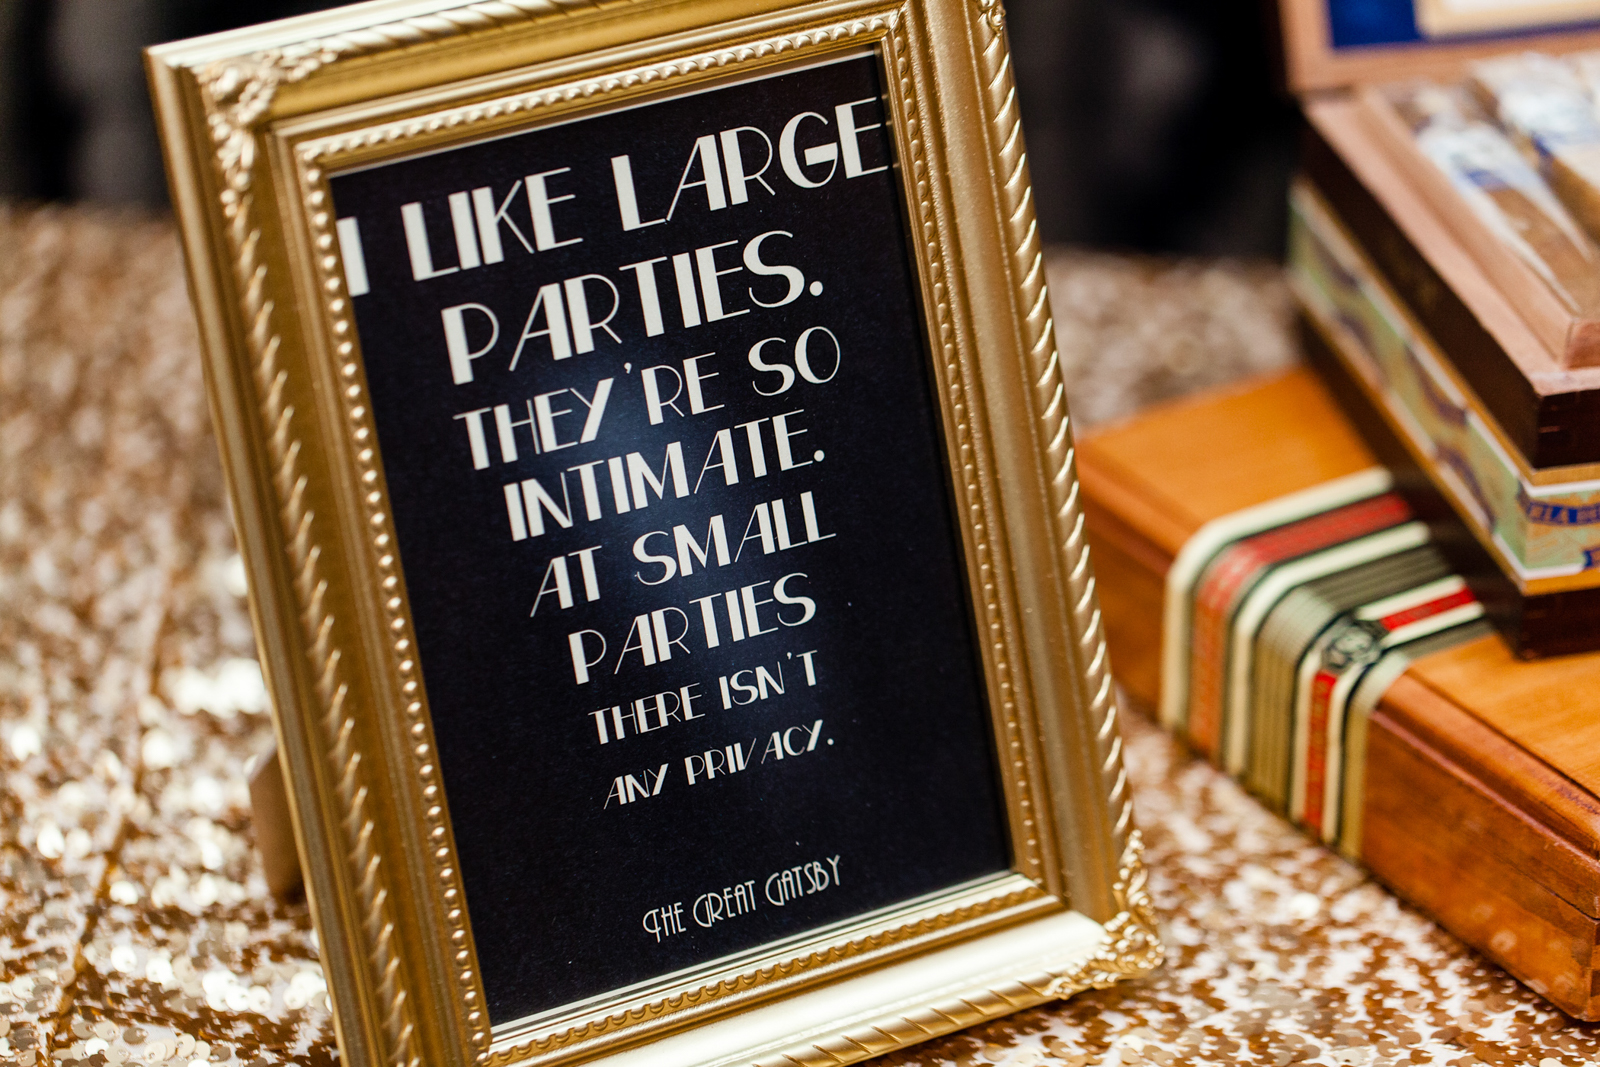 Popular wedding themes you should not use inside weddings a list of popular wedding themes you should probably skip for your big day junglespirit Choice Image